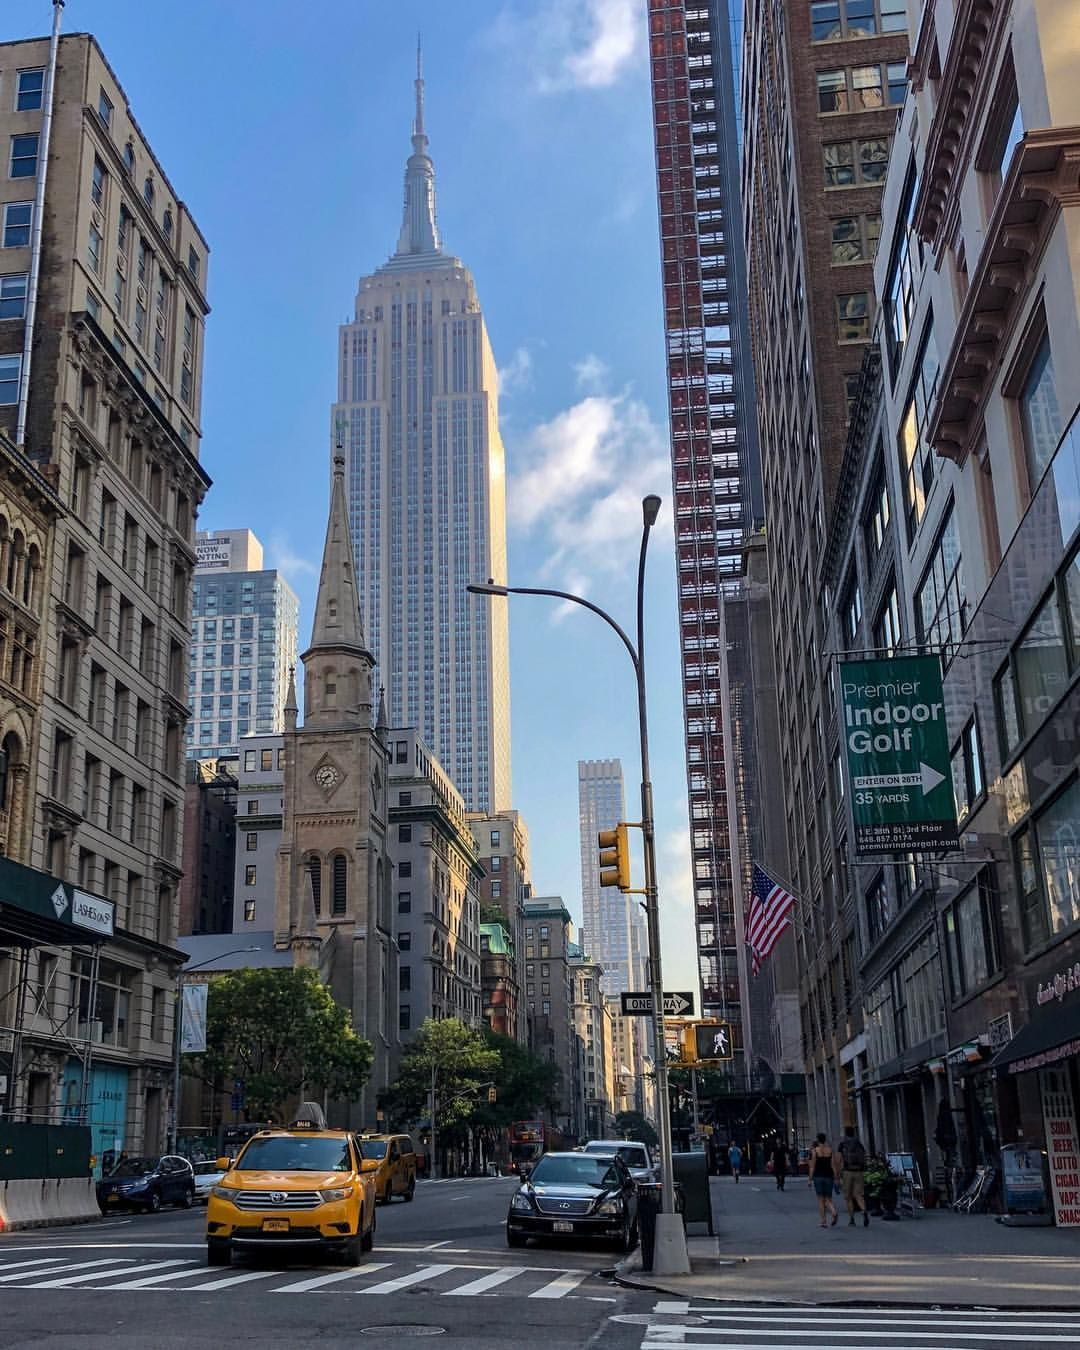 New York Presented A Paradox While Foreigners Thought Of New York